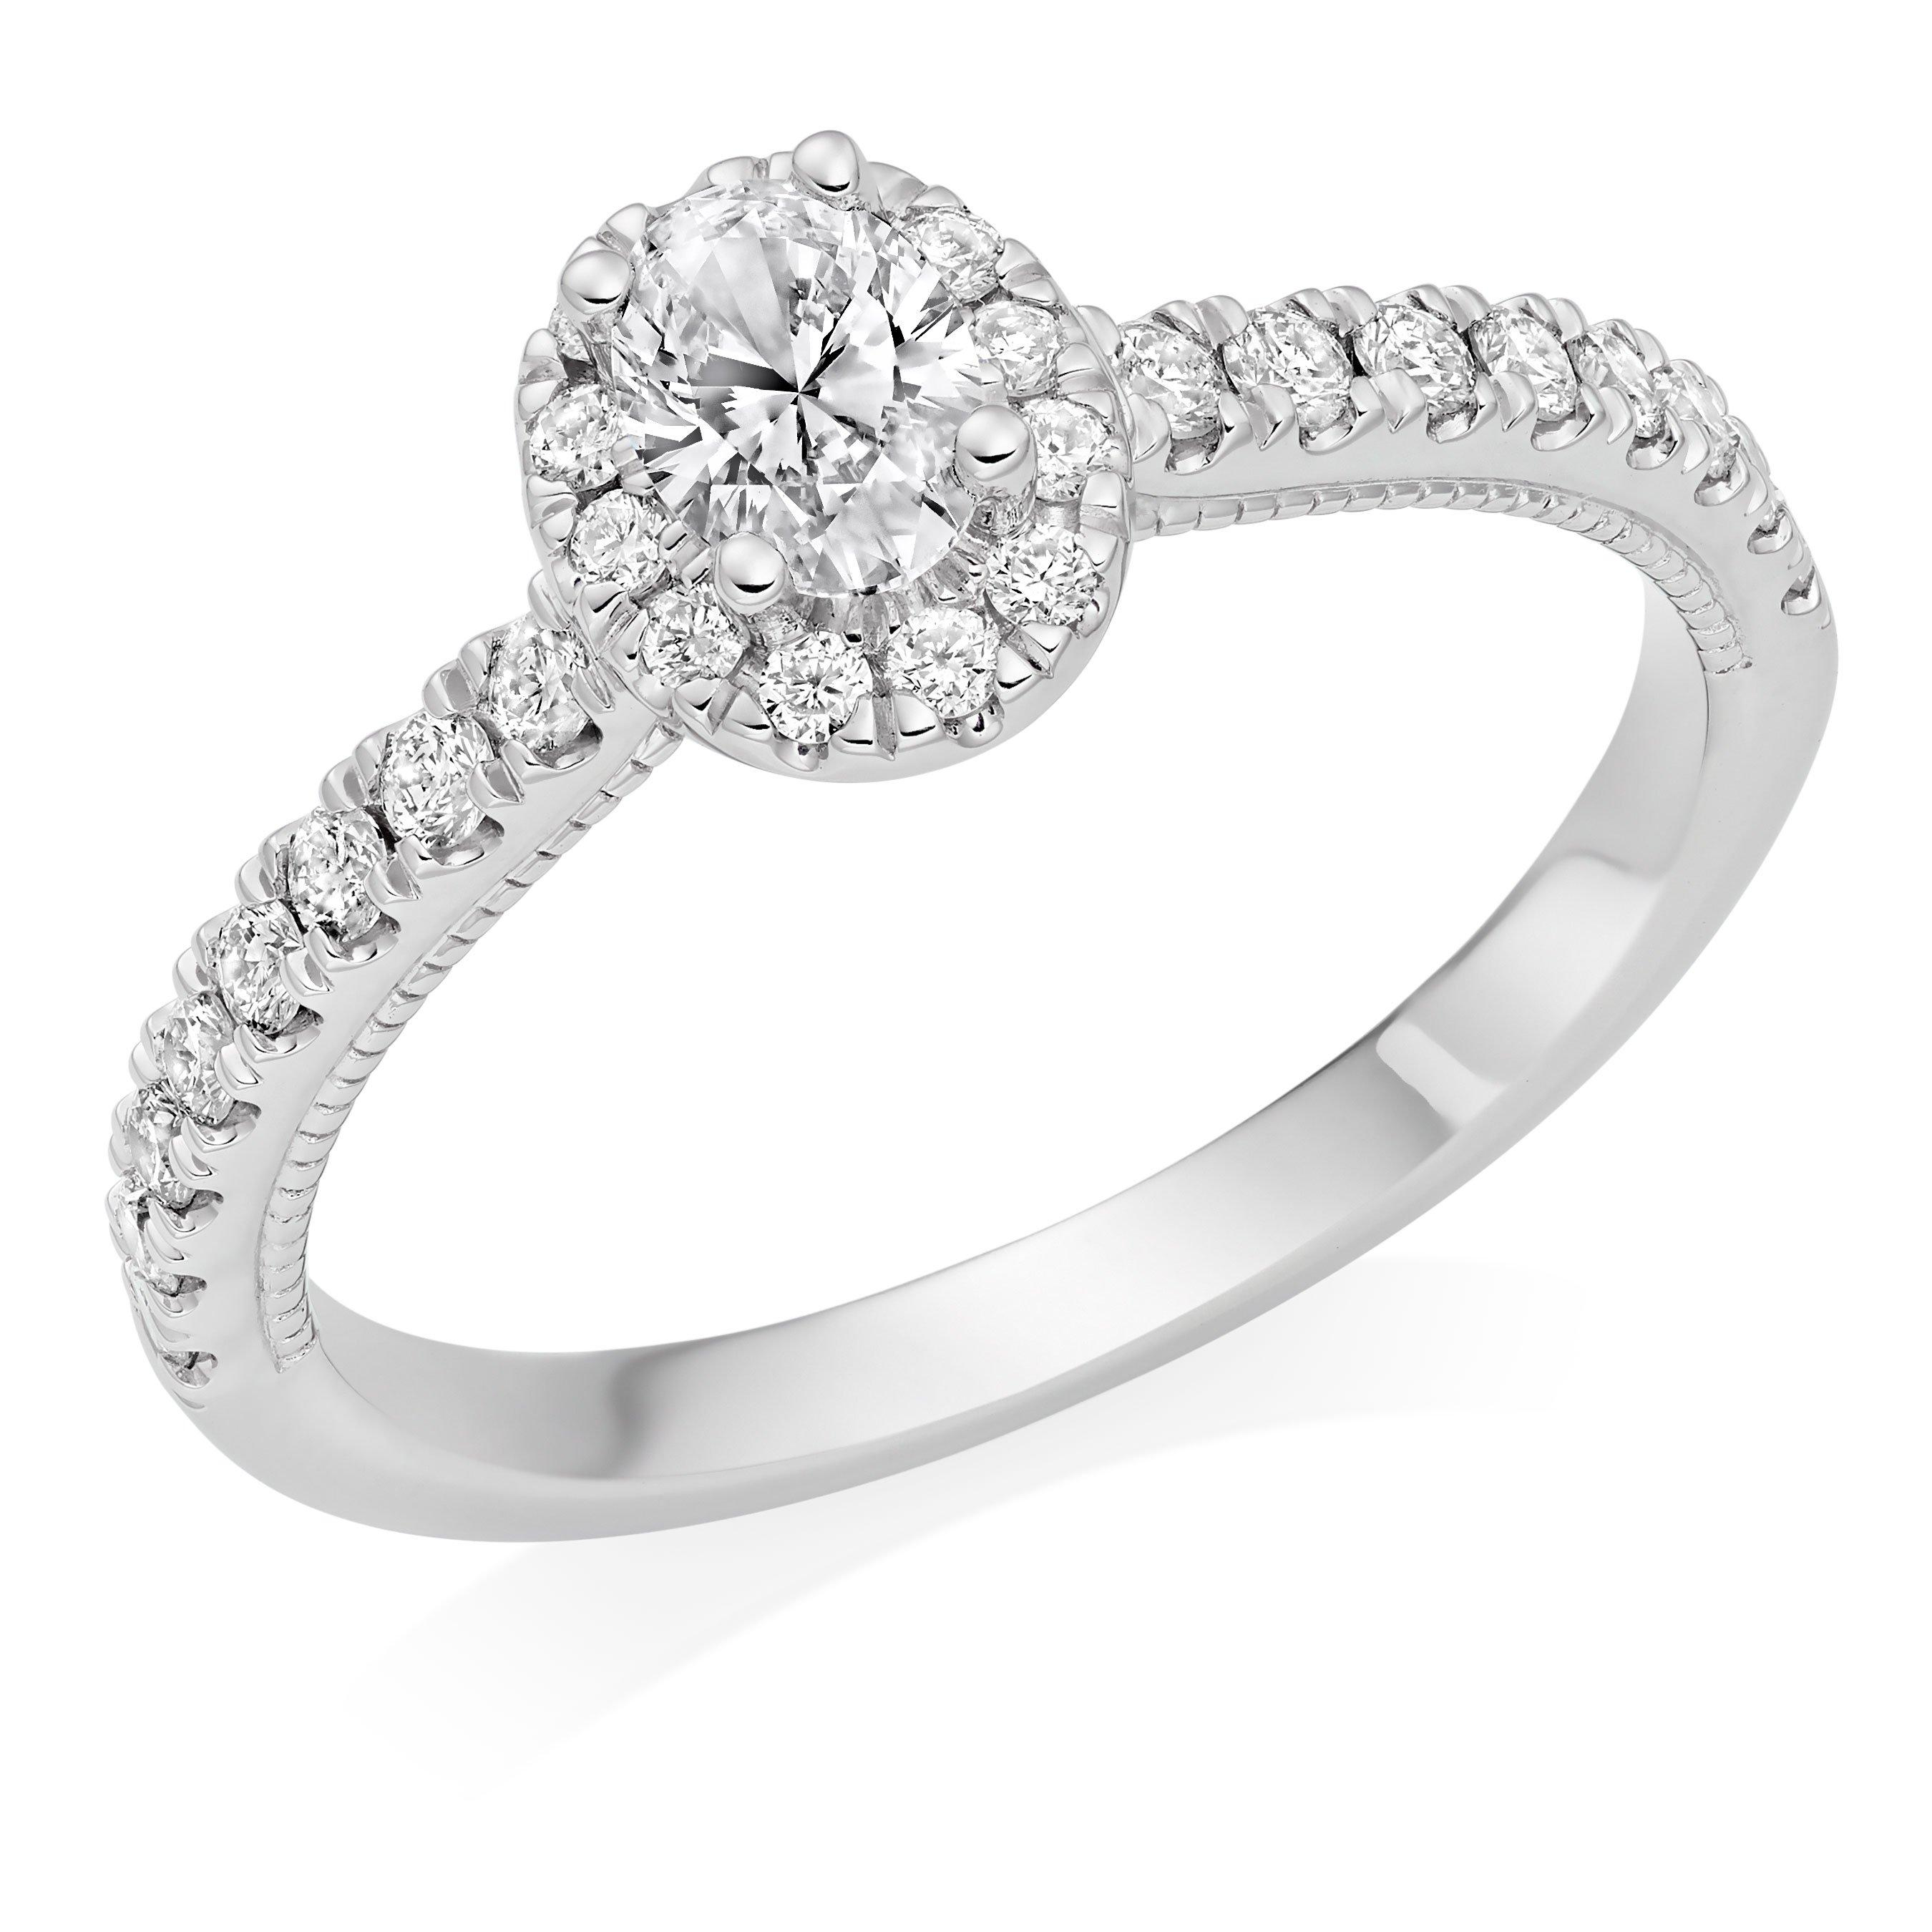 Royal Asscher Oval Cut Platinum Diamond Halo Ring